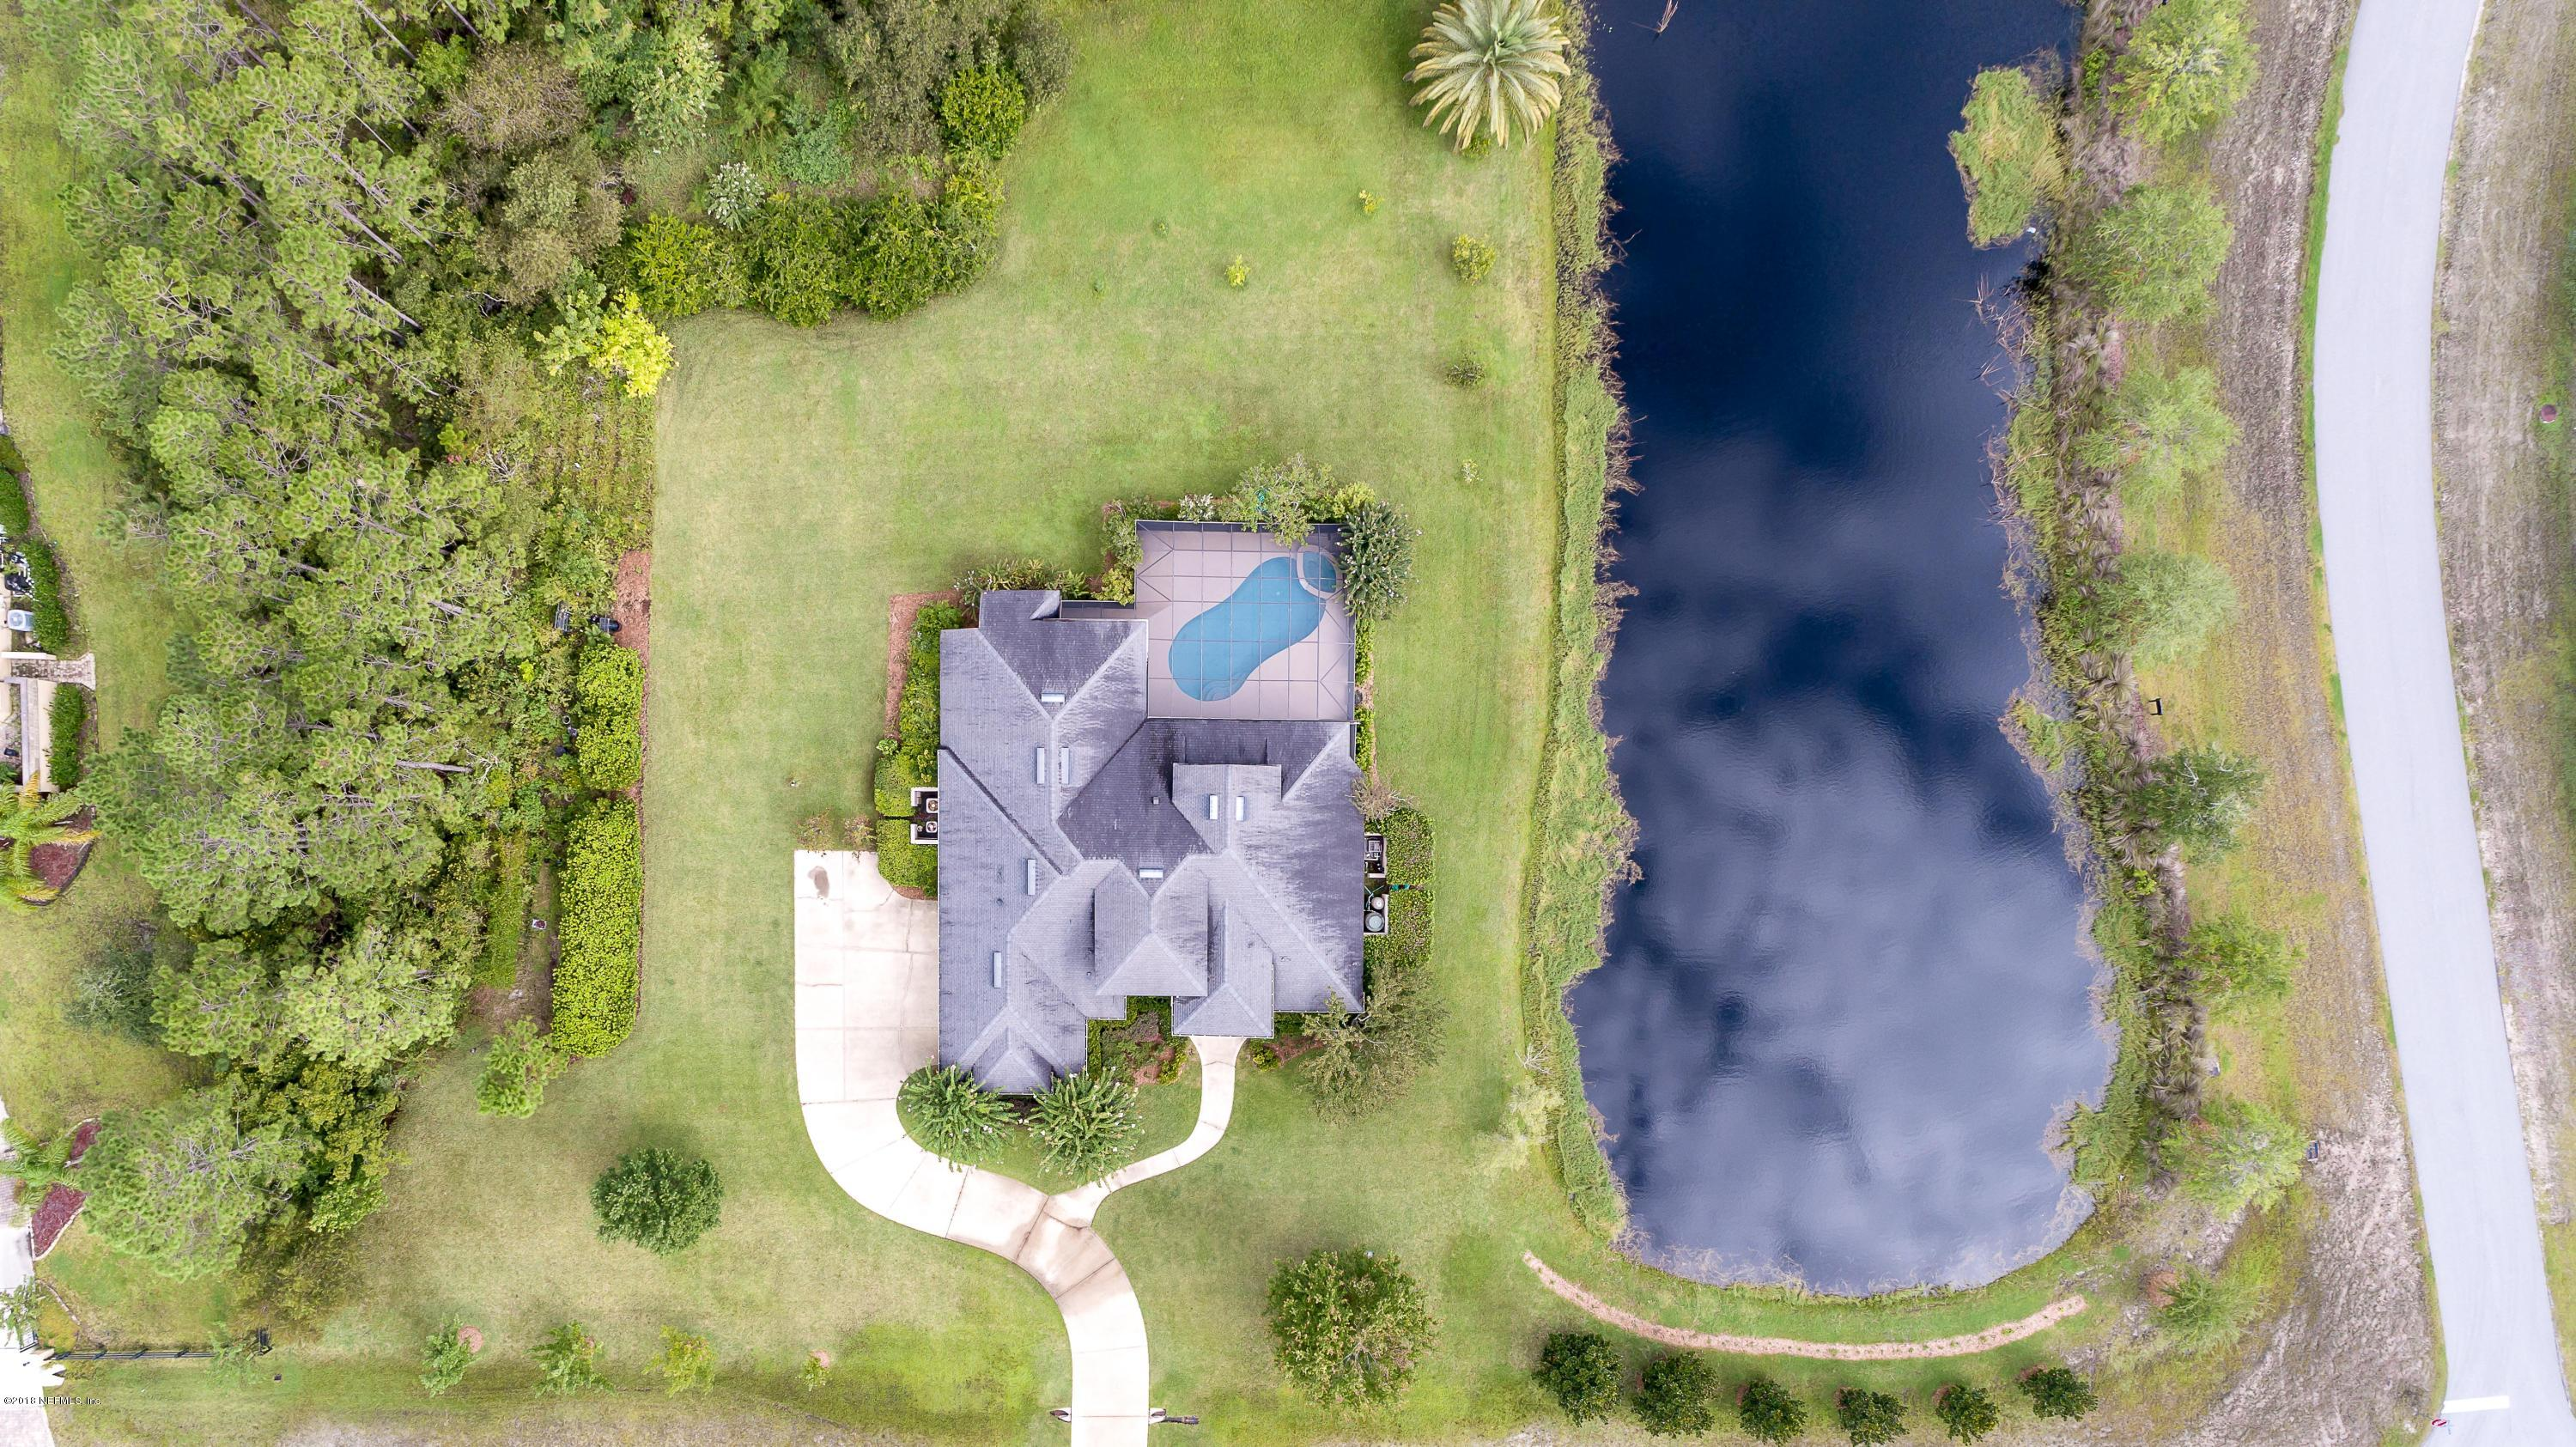 208 BURGHLEY, ST AUGUSTINE, FLORIDA 32092, 4 Bedrooms Bedrooms, ,4 BathroomsBathrooms,Residential - single family,For sale,BURGHLEY,952627